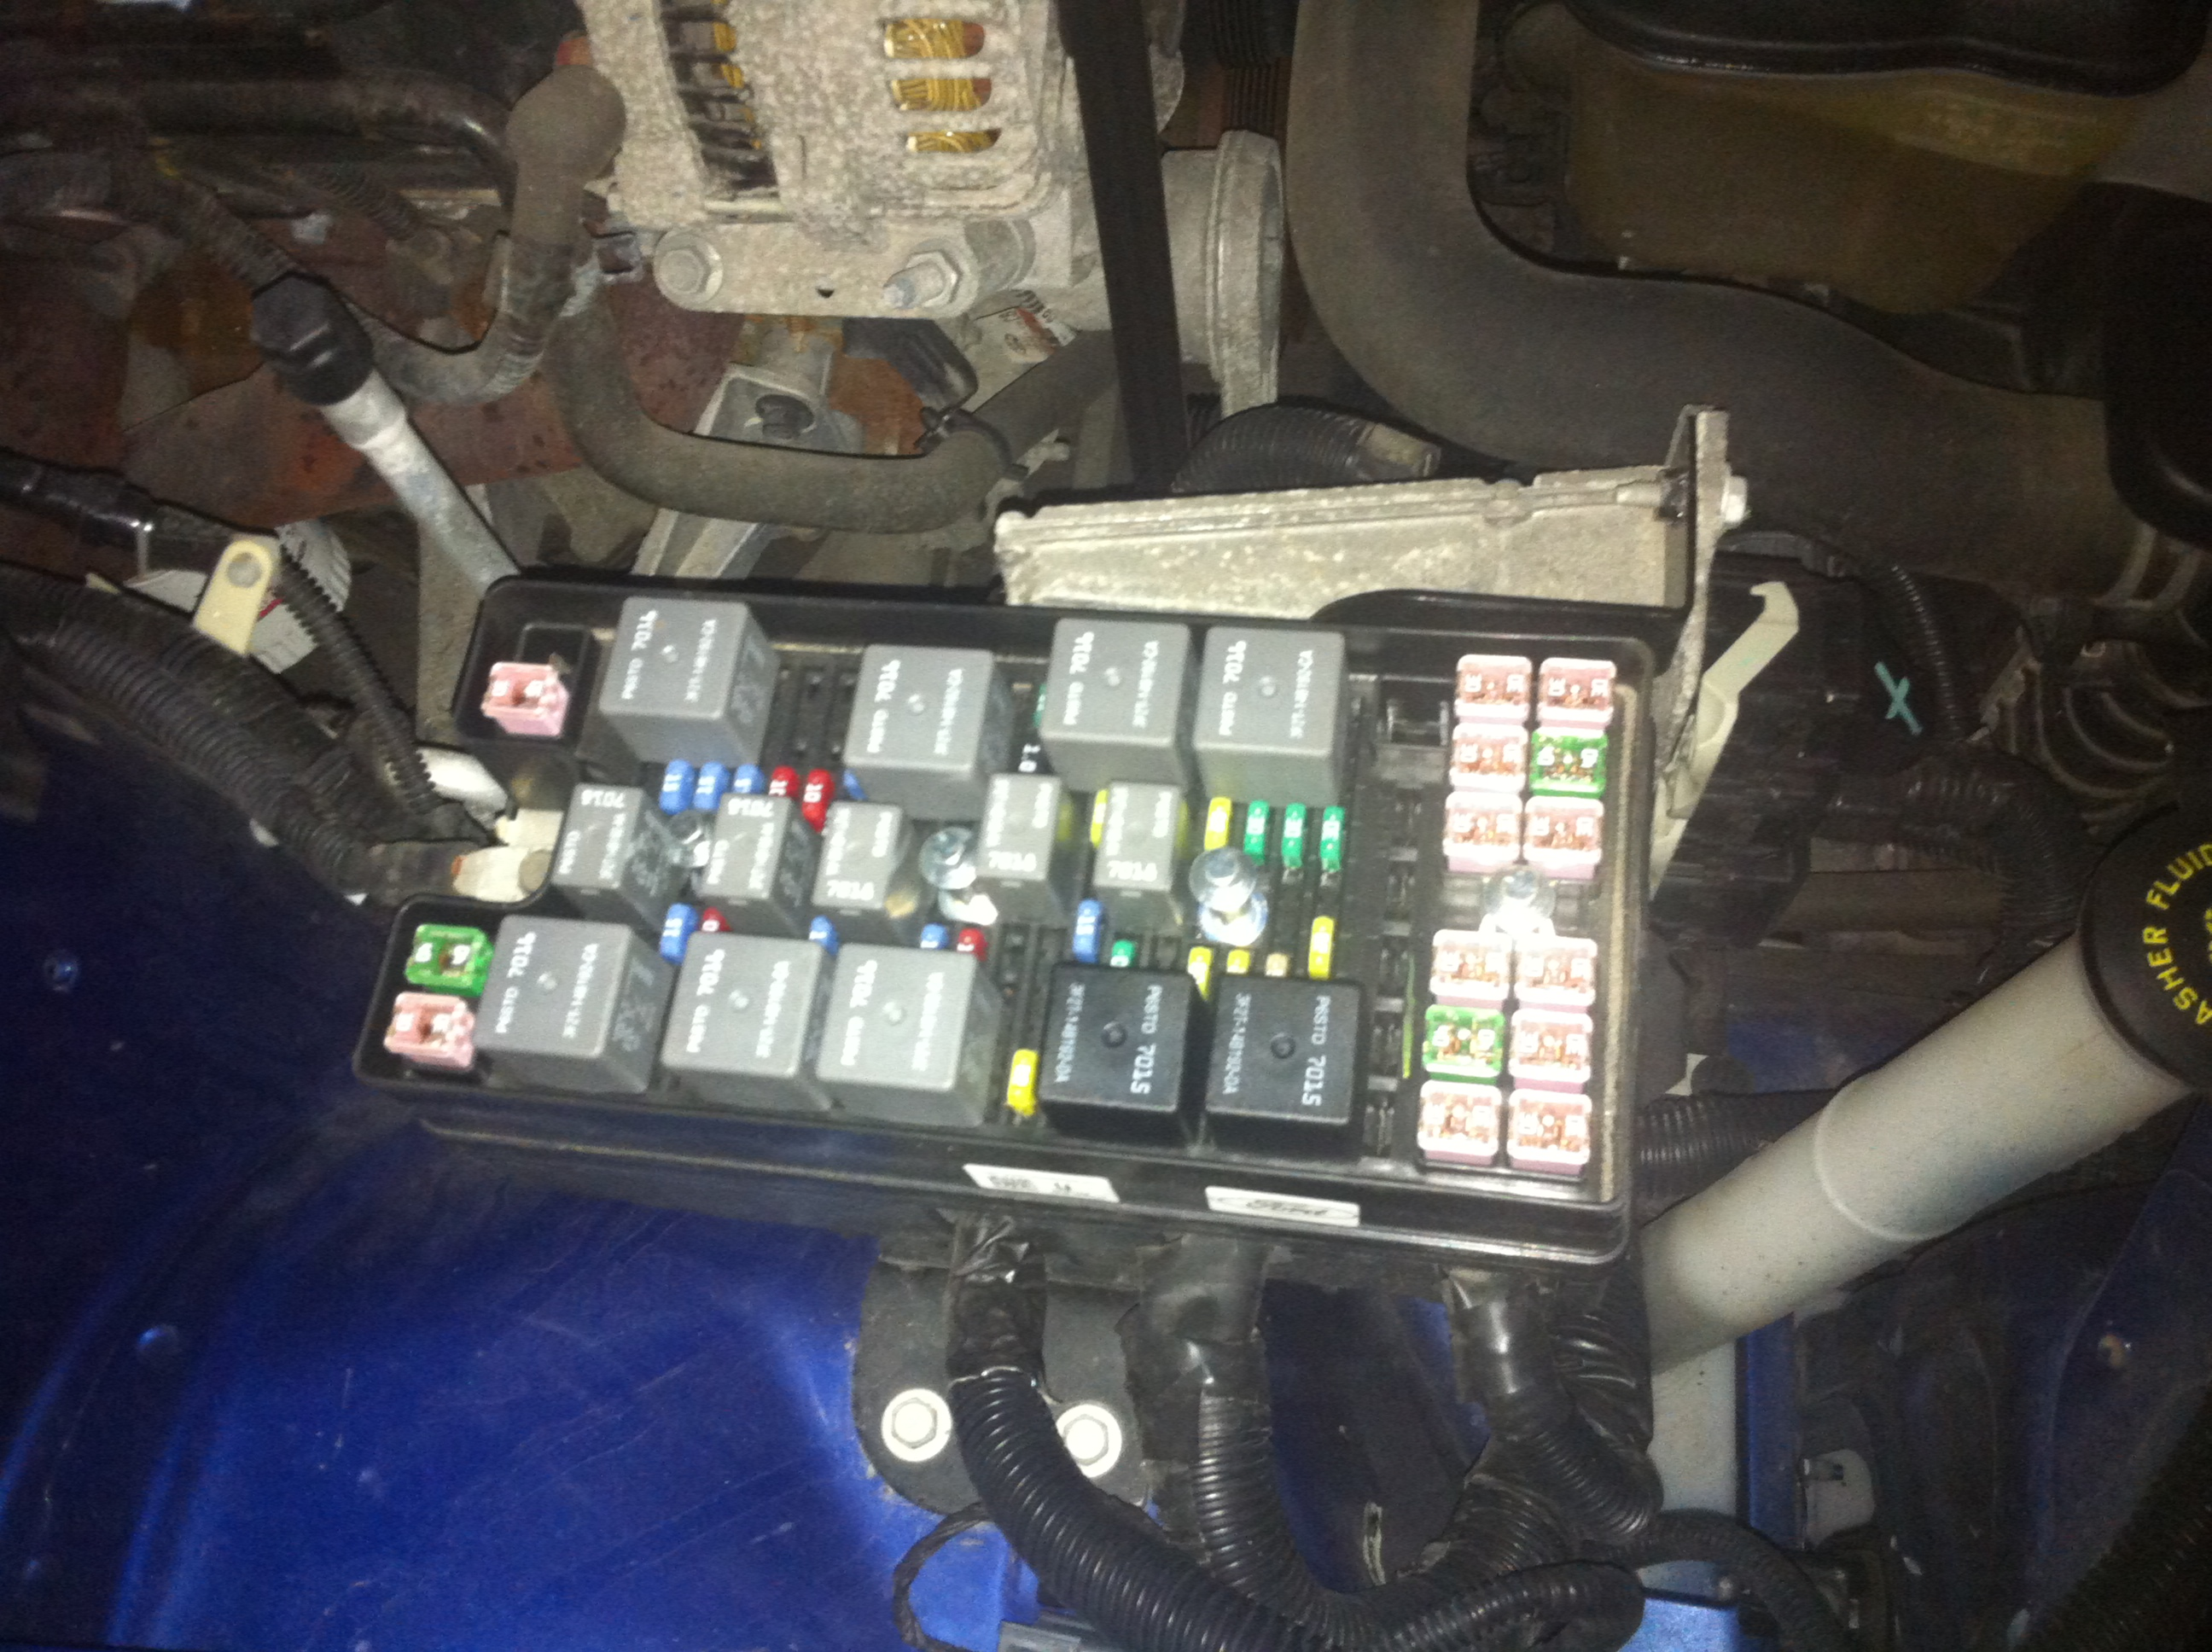 07 Mustang Fuse Box Just Wiring Data 04 Cavalier Car Instructions How To Unlock My Trunk On 2007 Ford Titan